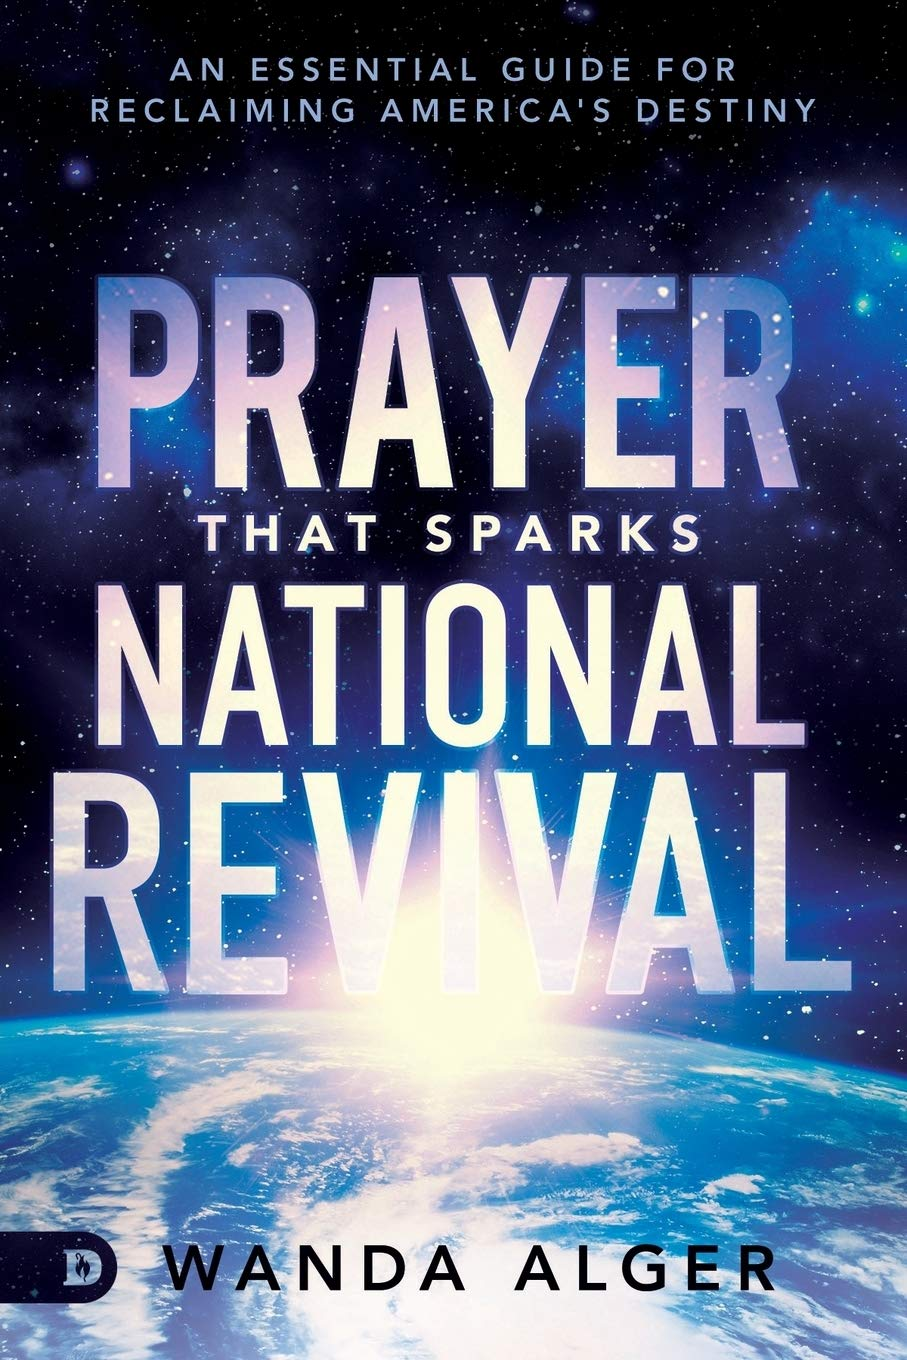 Prayer That Sparks National Revival: An Essential Guide for Reclaiming America's Destiny